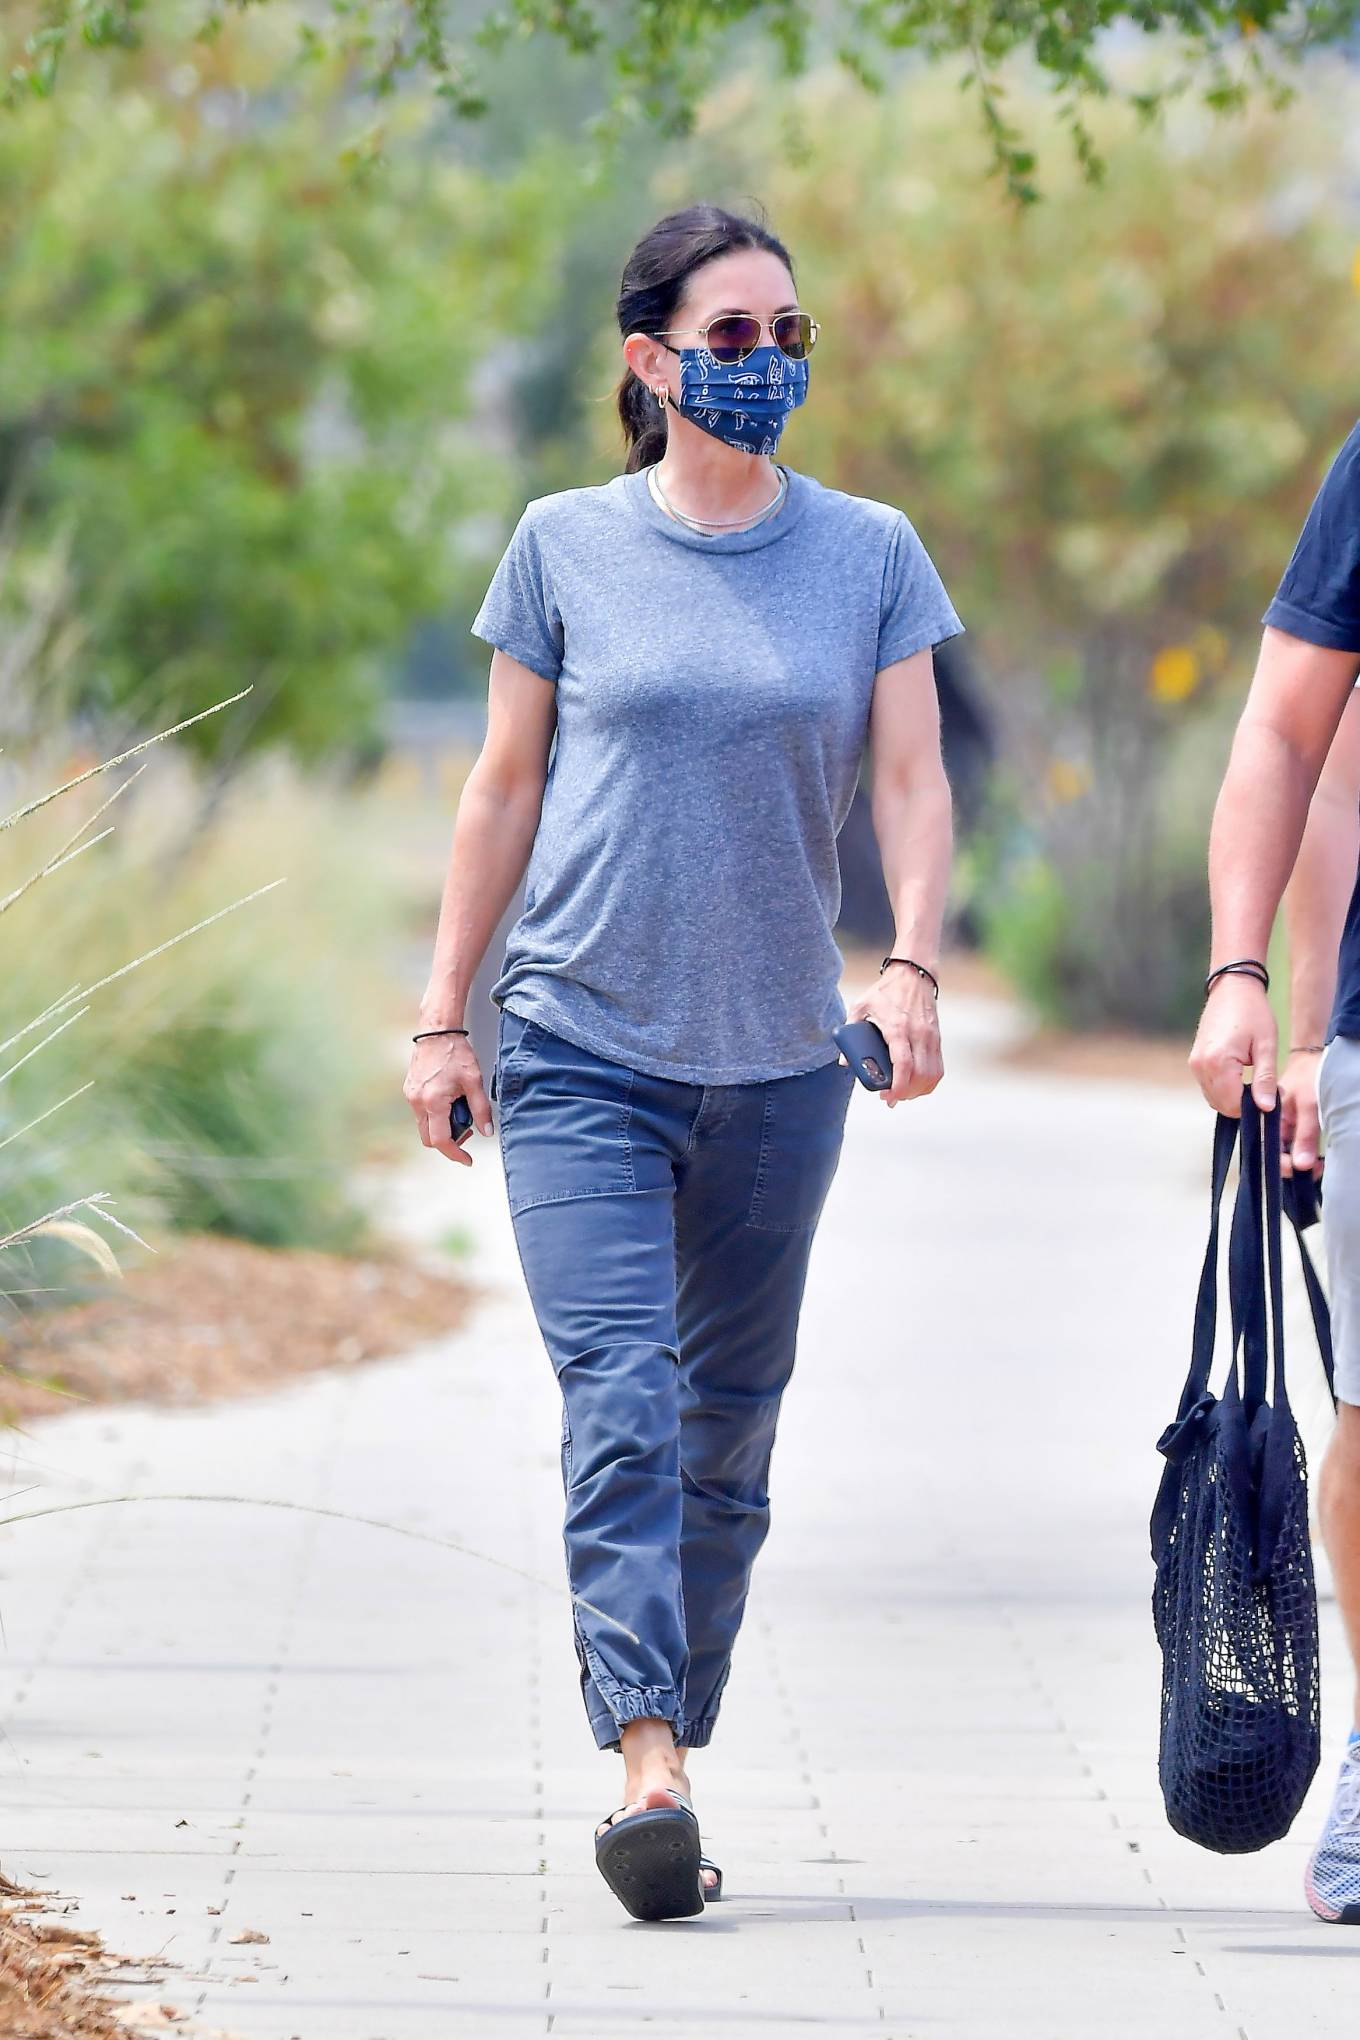 Courteney Cox - Wears a 'Vote' printed mask in Malibu